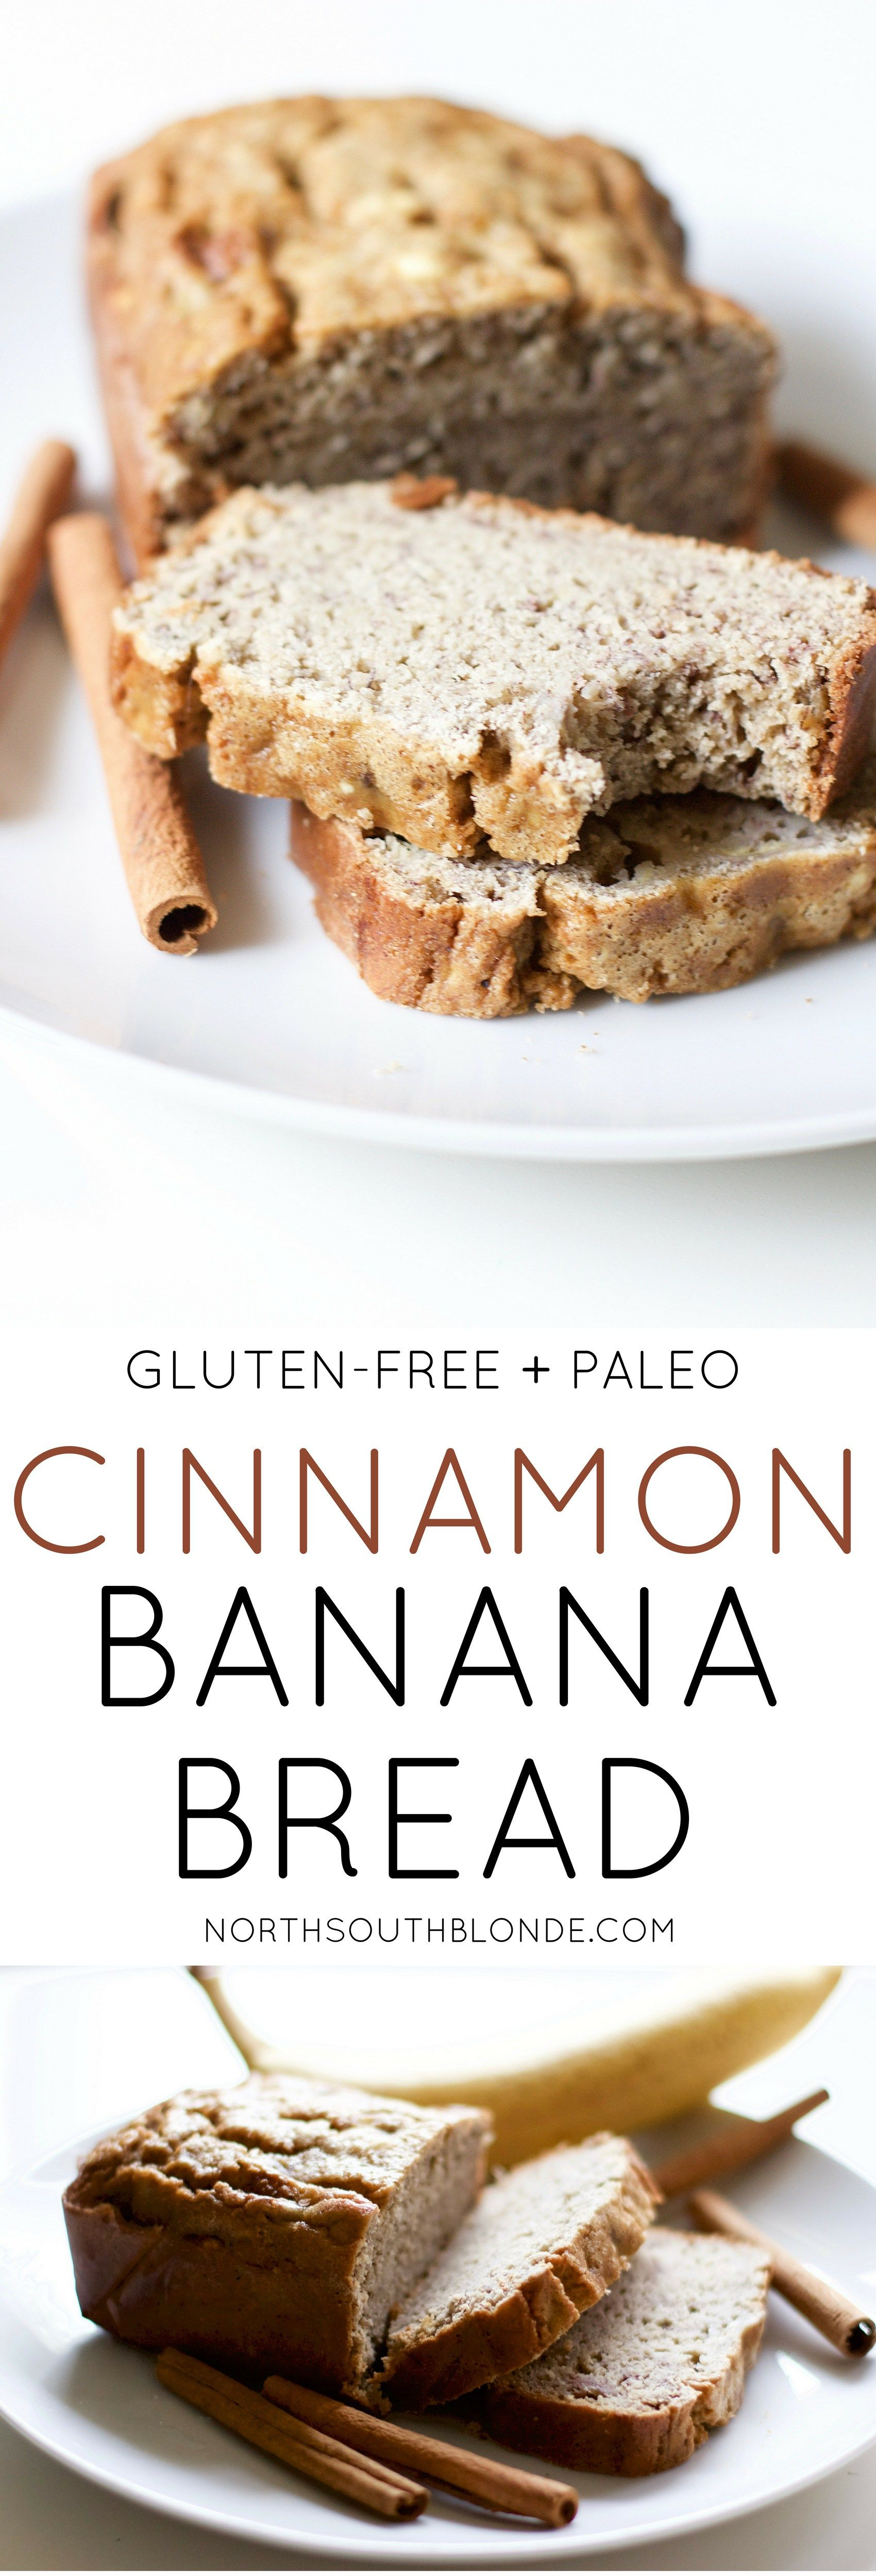 Cinnamon Banana Bread (Gluten-Free, Paleo) | Recipe ...